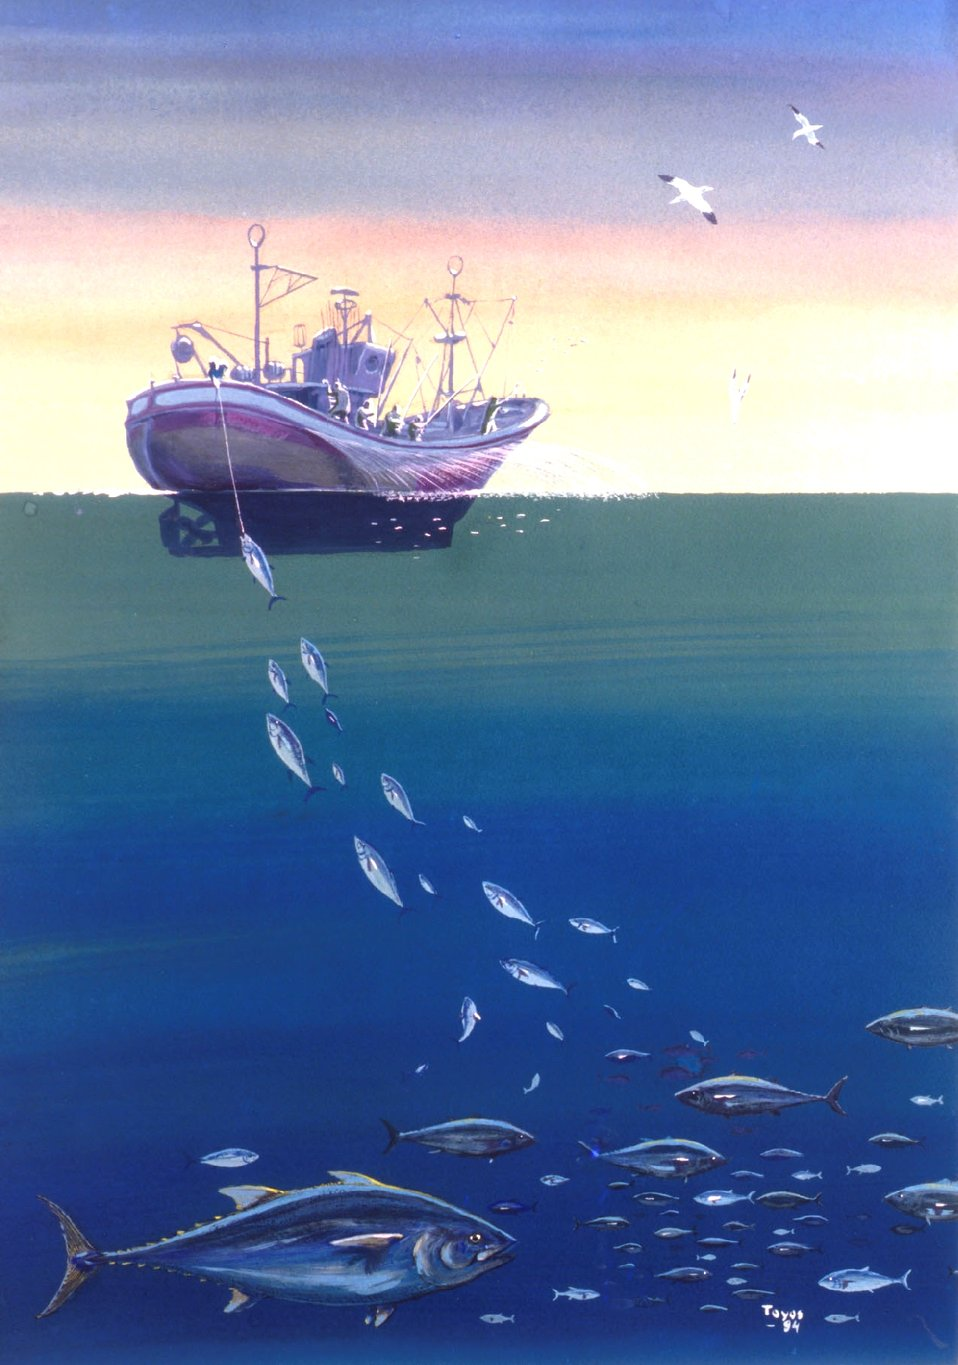 Artist's conception of pole and line fishing.  When one fish is hooked, the rest  of the school tends to follow the hooked fish to the side of the fishing vessel .